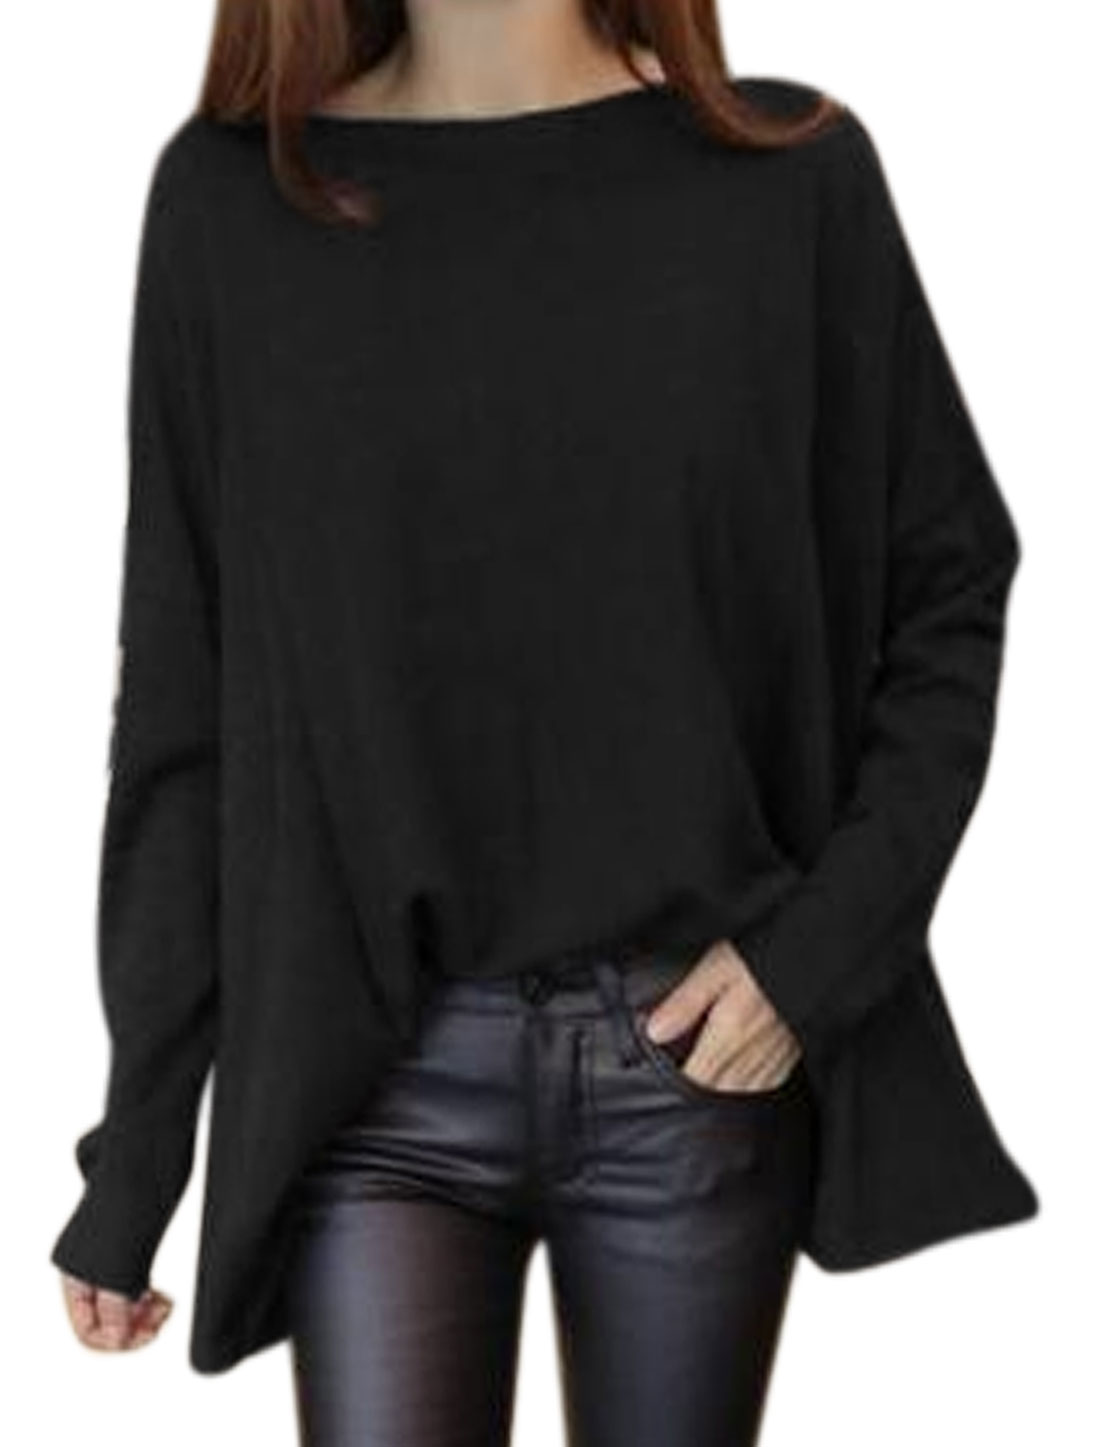 Women Boat Neck Dolman Sleeves Oversized Tunic Top Black M